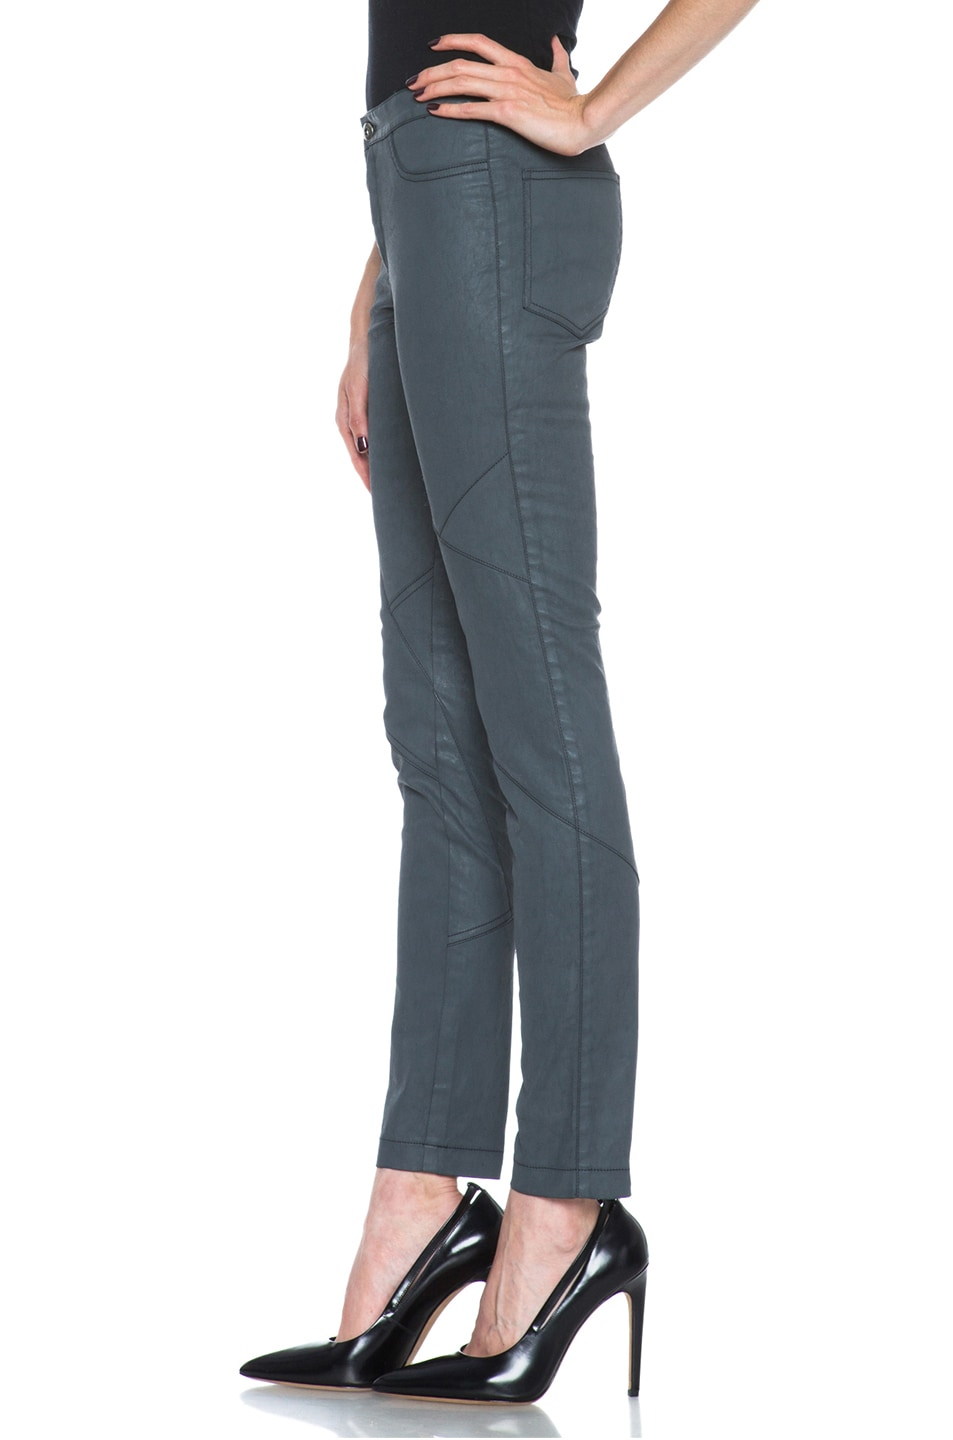 Image 2 of Tess Giberson Coated Cotton Pieced Legging in Charcoal